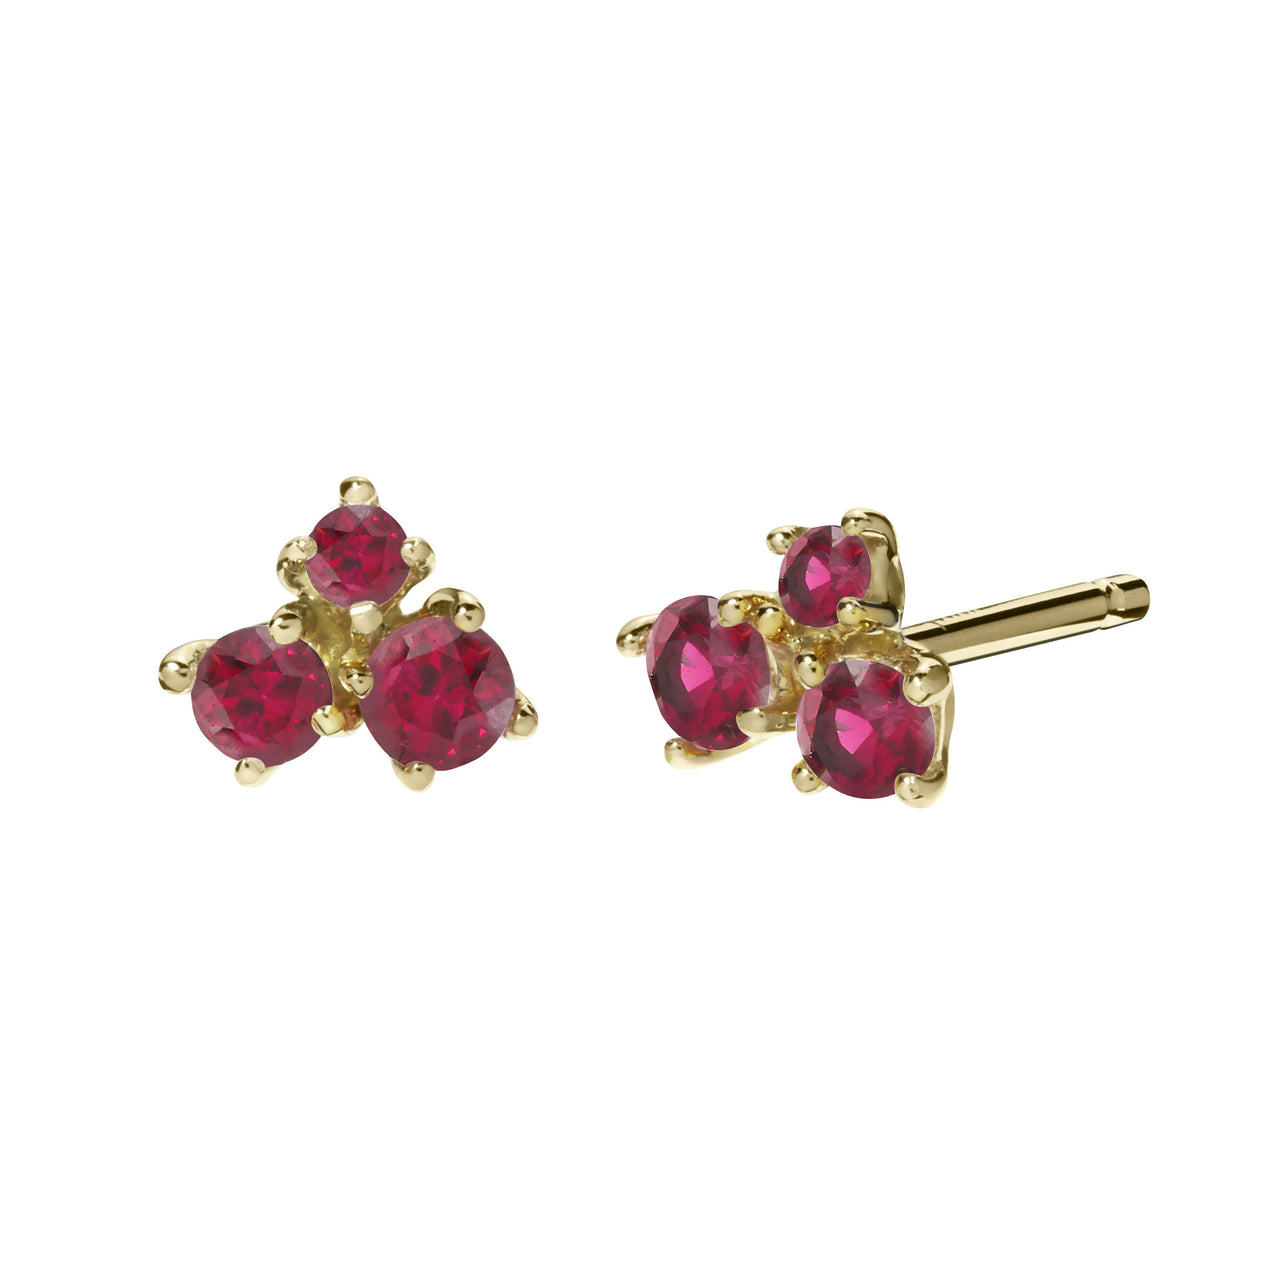 small red ruby cluster stud earrings in 18k yellow gold by finn by candice pool neistat